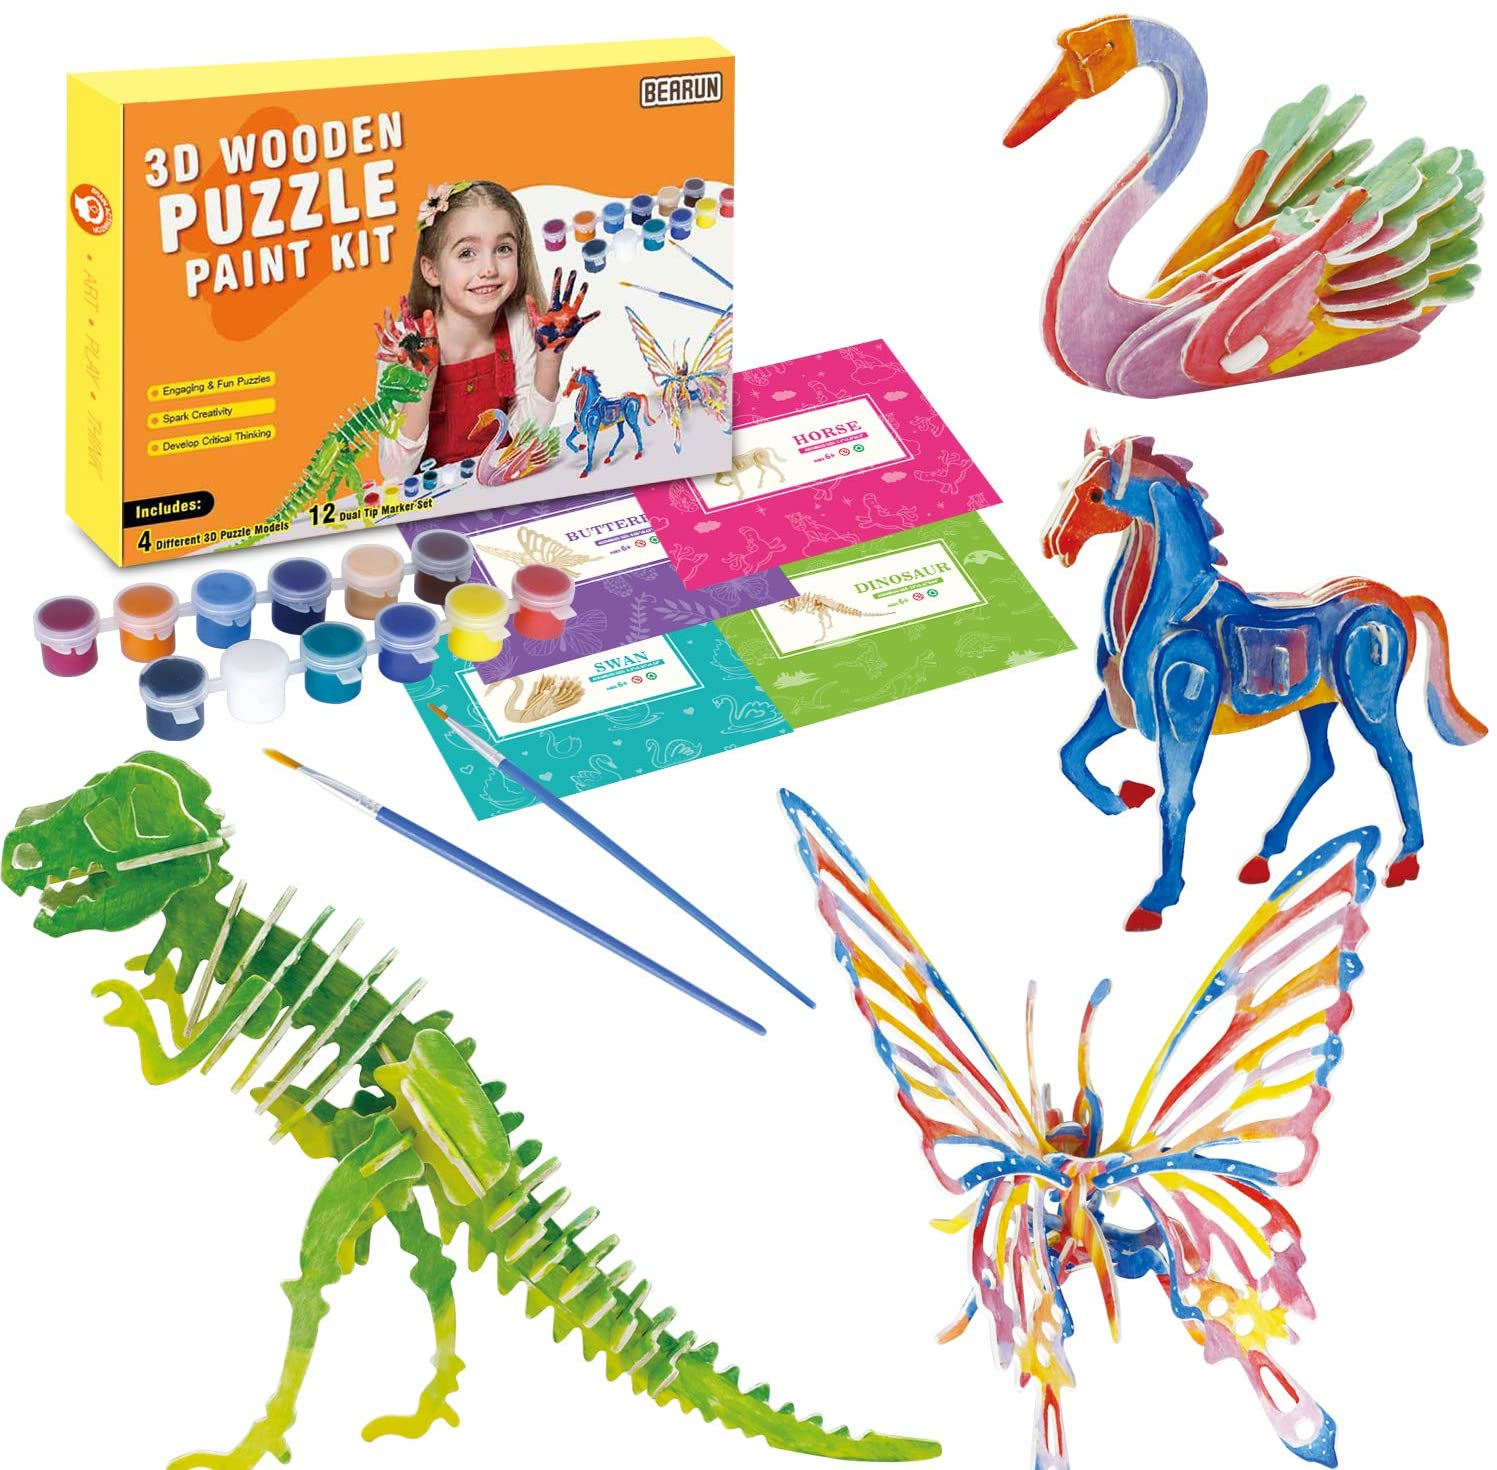 3D Wooden Puzzle Painting Kit - Arts and Crafts Supplies Educational Toys for Boys Girls Age 6+ Years Old Kid Creativity Fun Activities for Kids Paint Your Own Animal Set